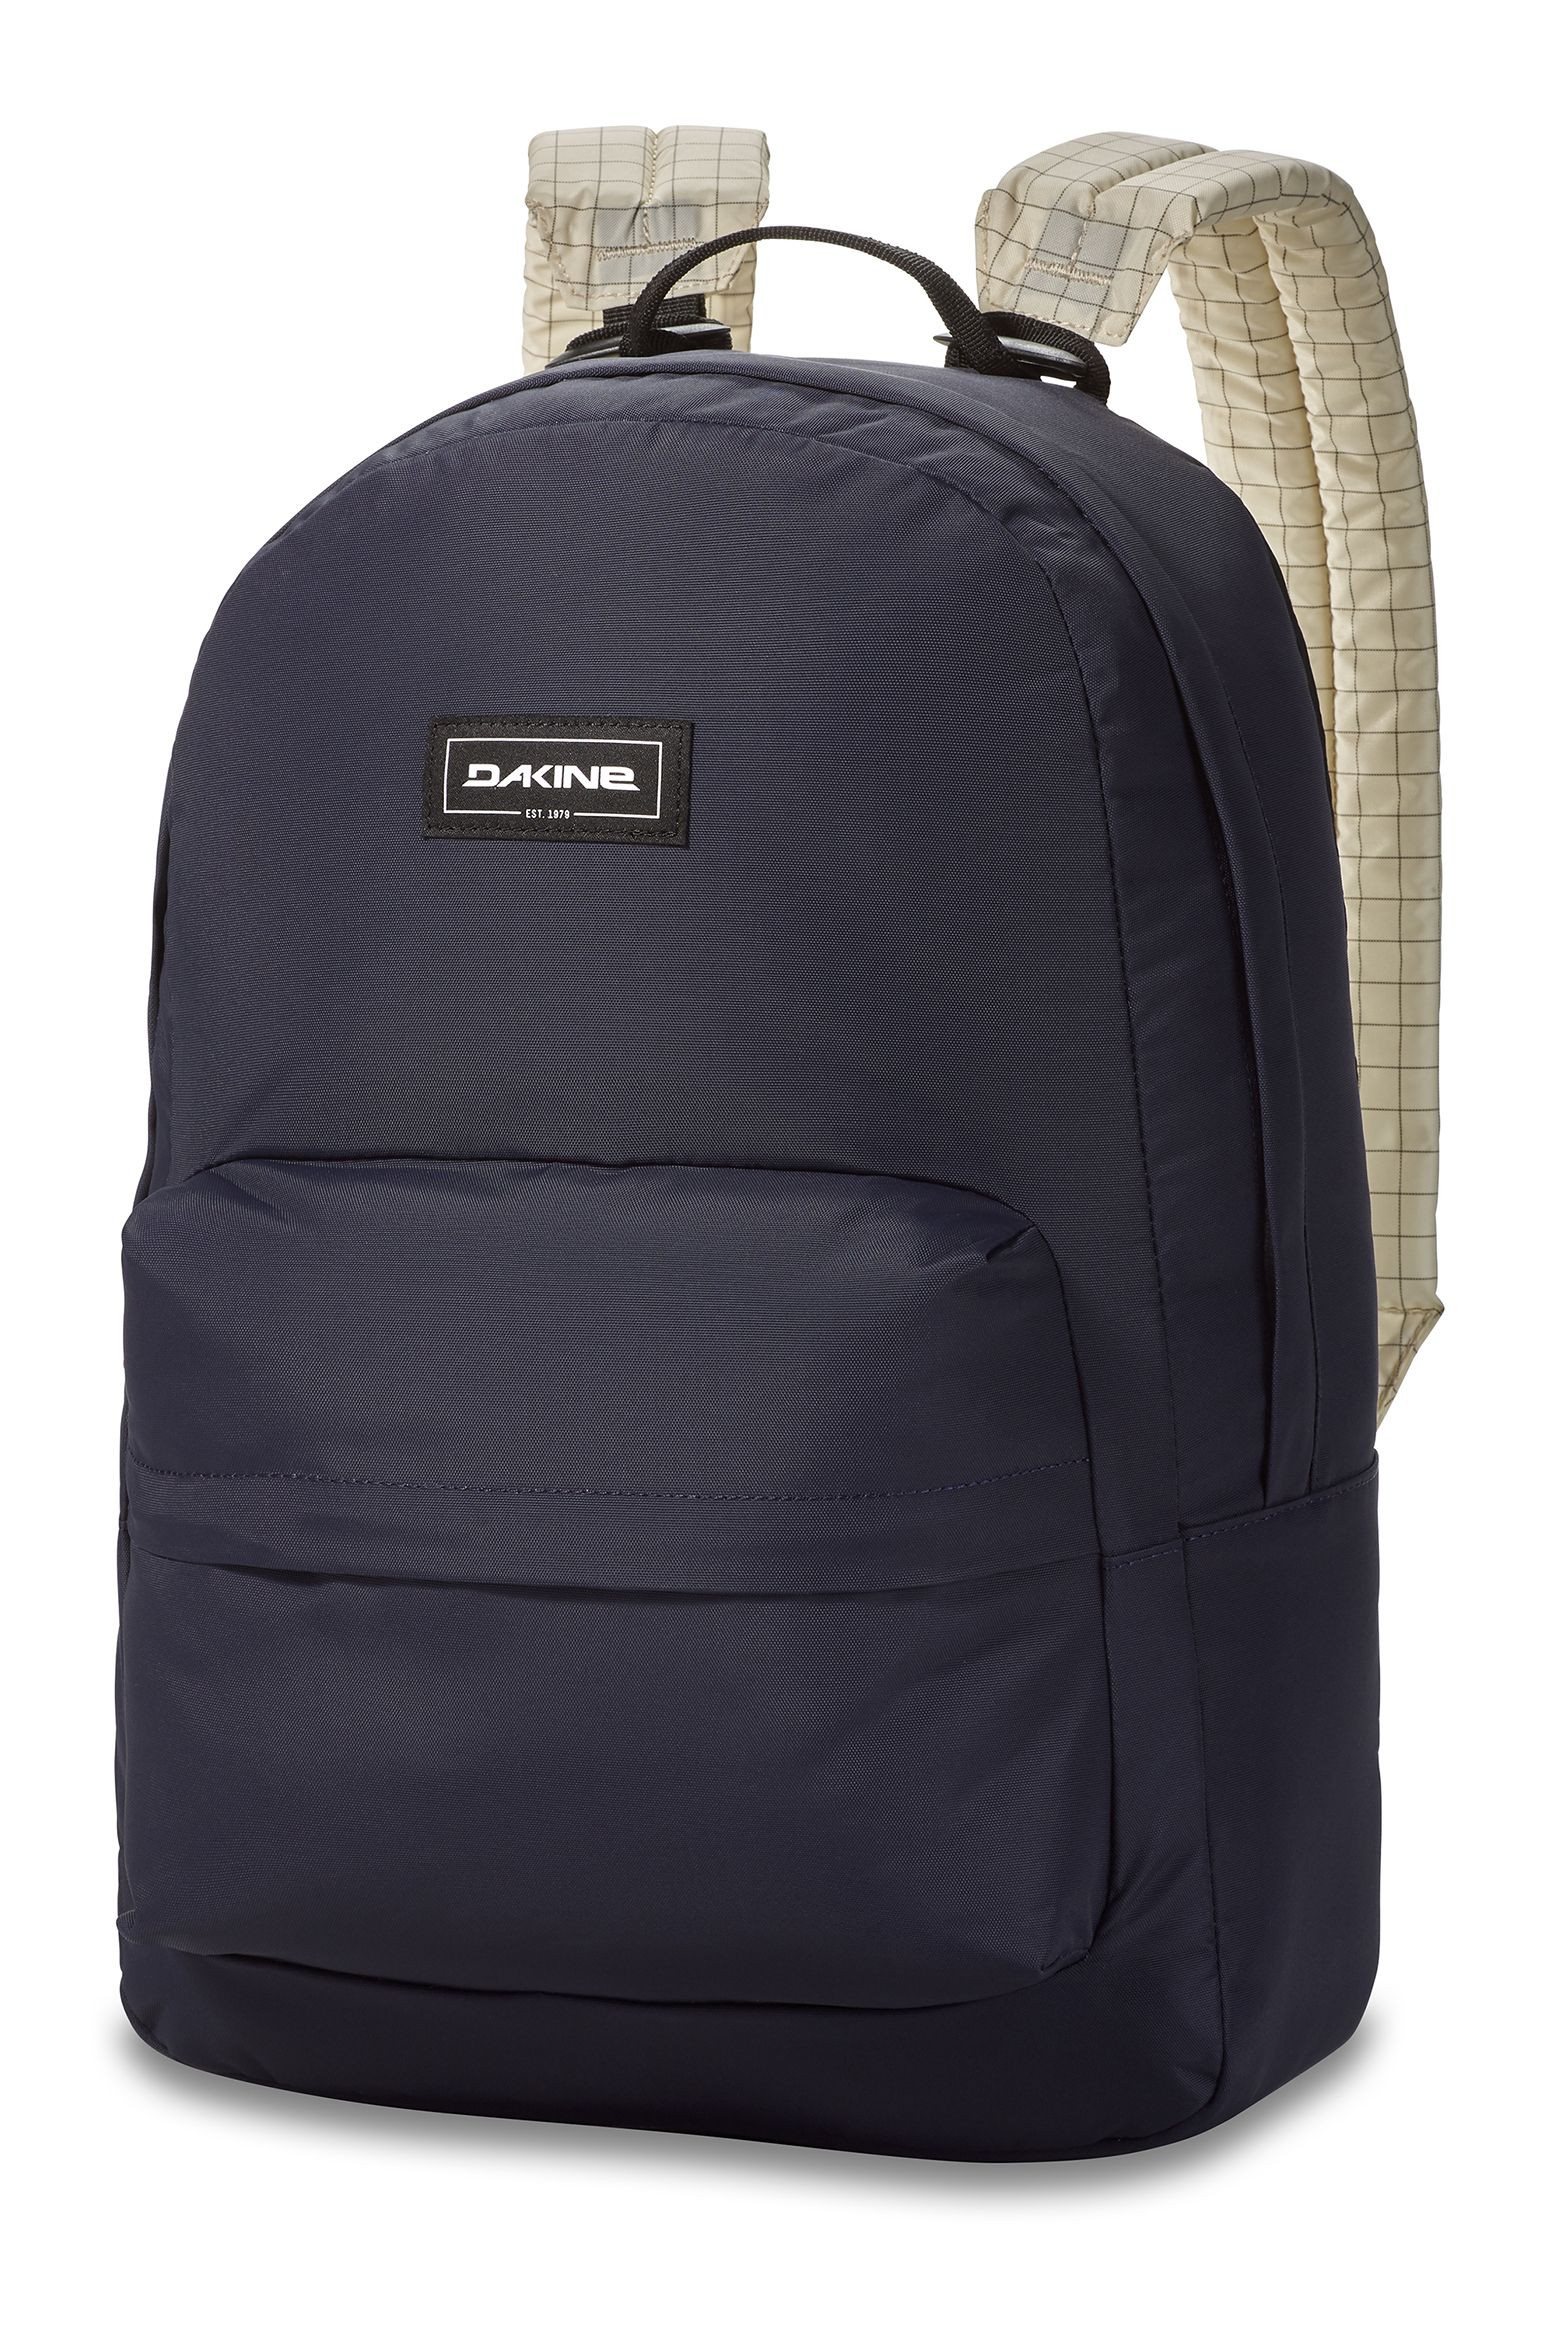 Dakine Backpack 365 PACK REVERSIBLE 21L Expedition